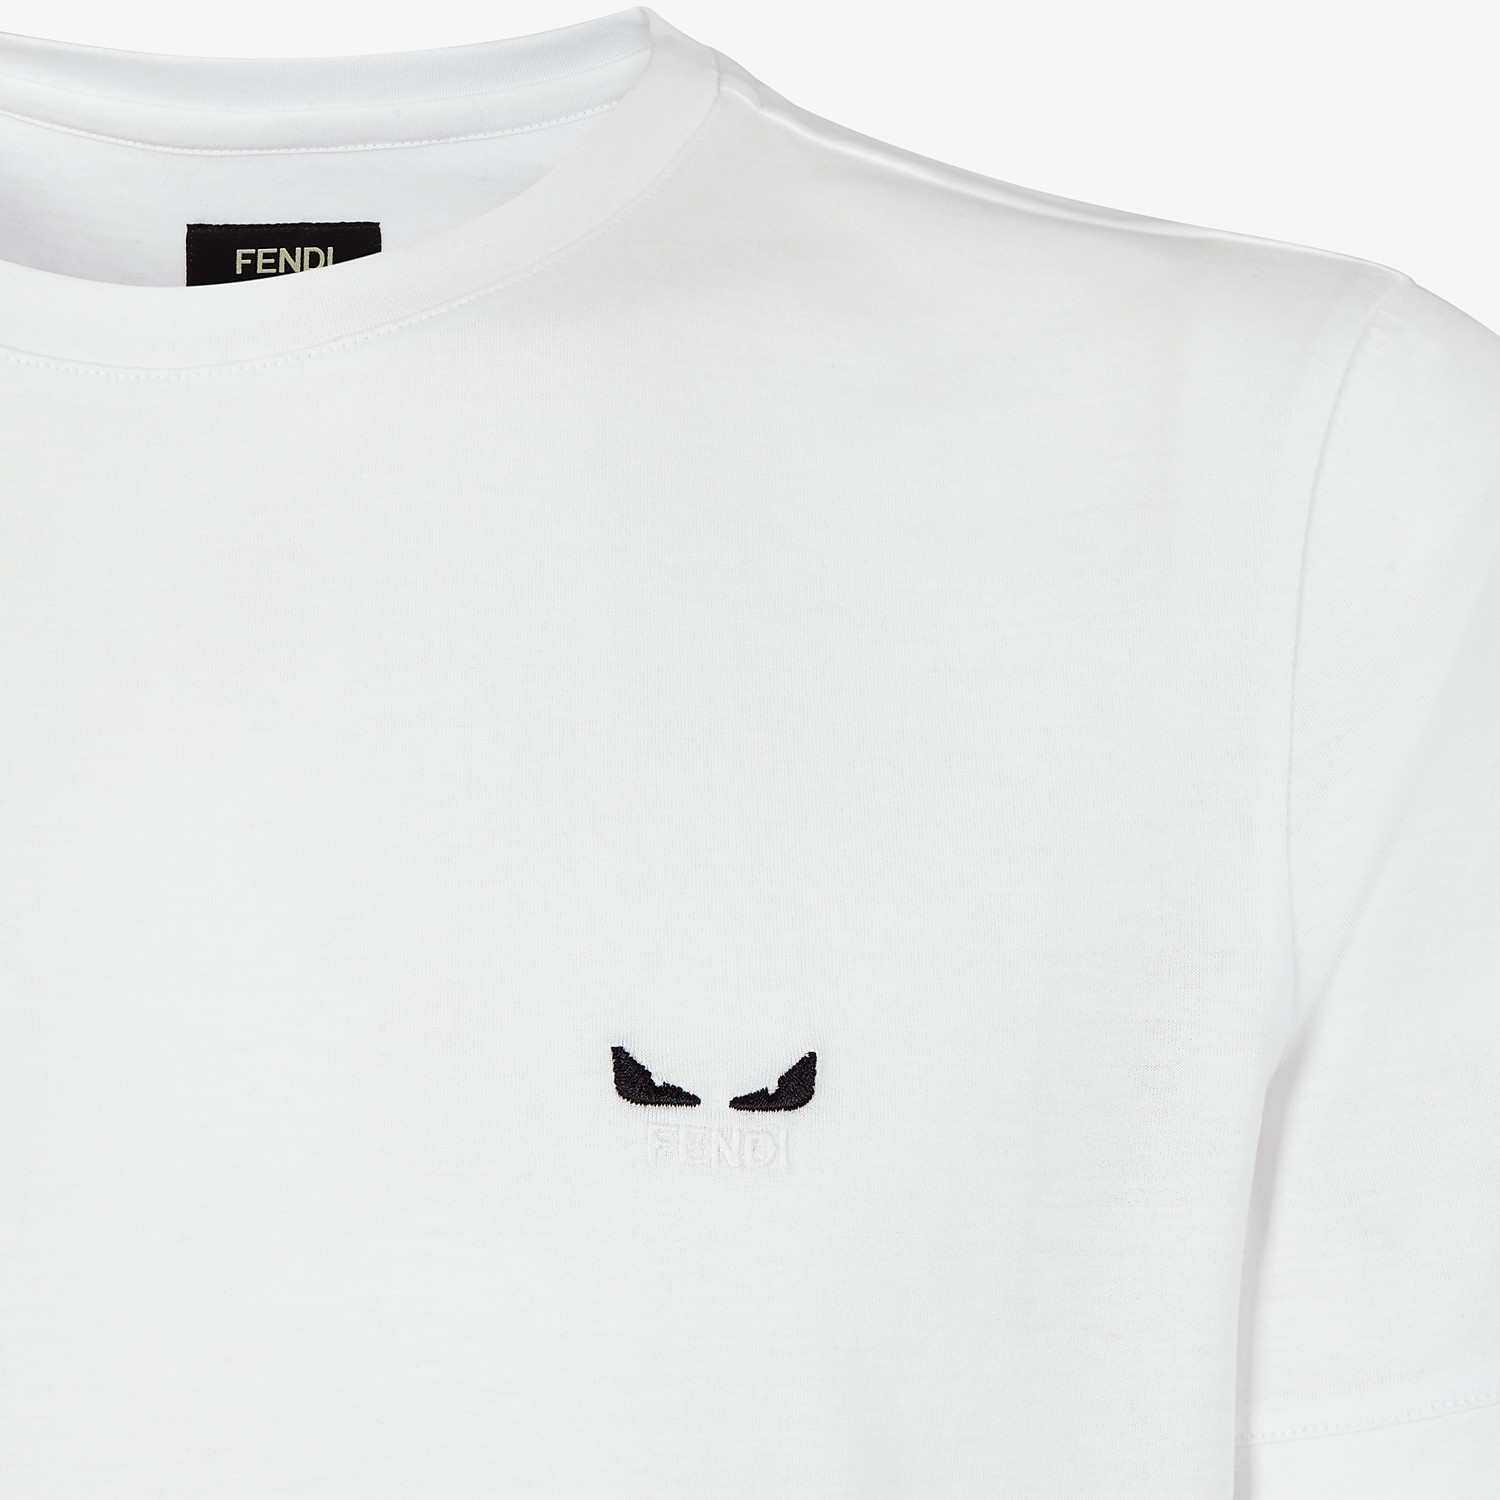 FENDI T-SHIRT - White cotton T-shirt - view 3 detail